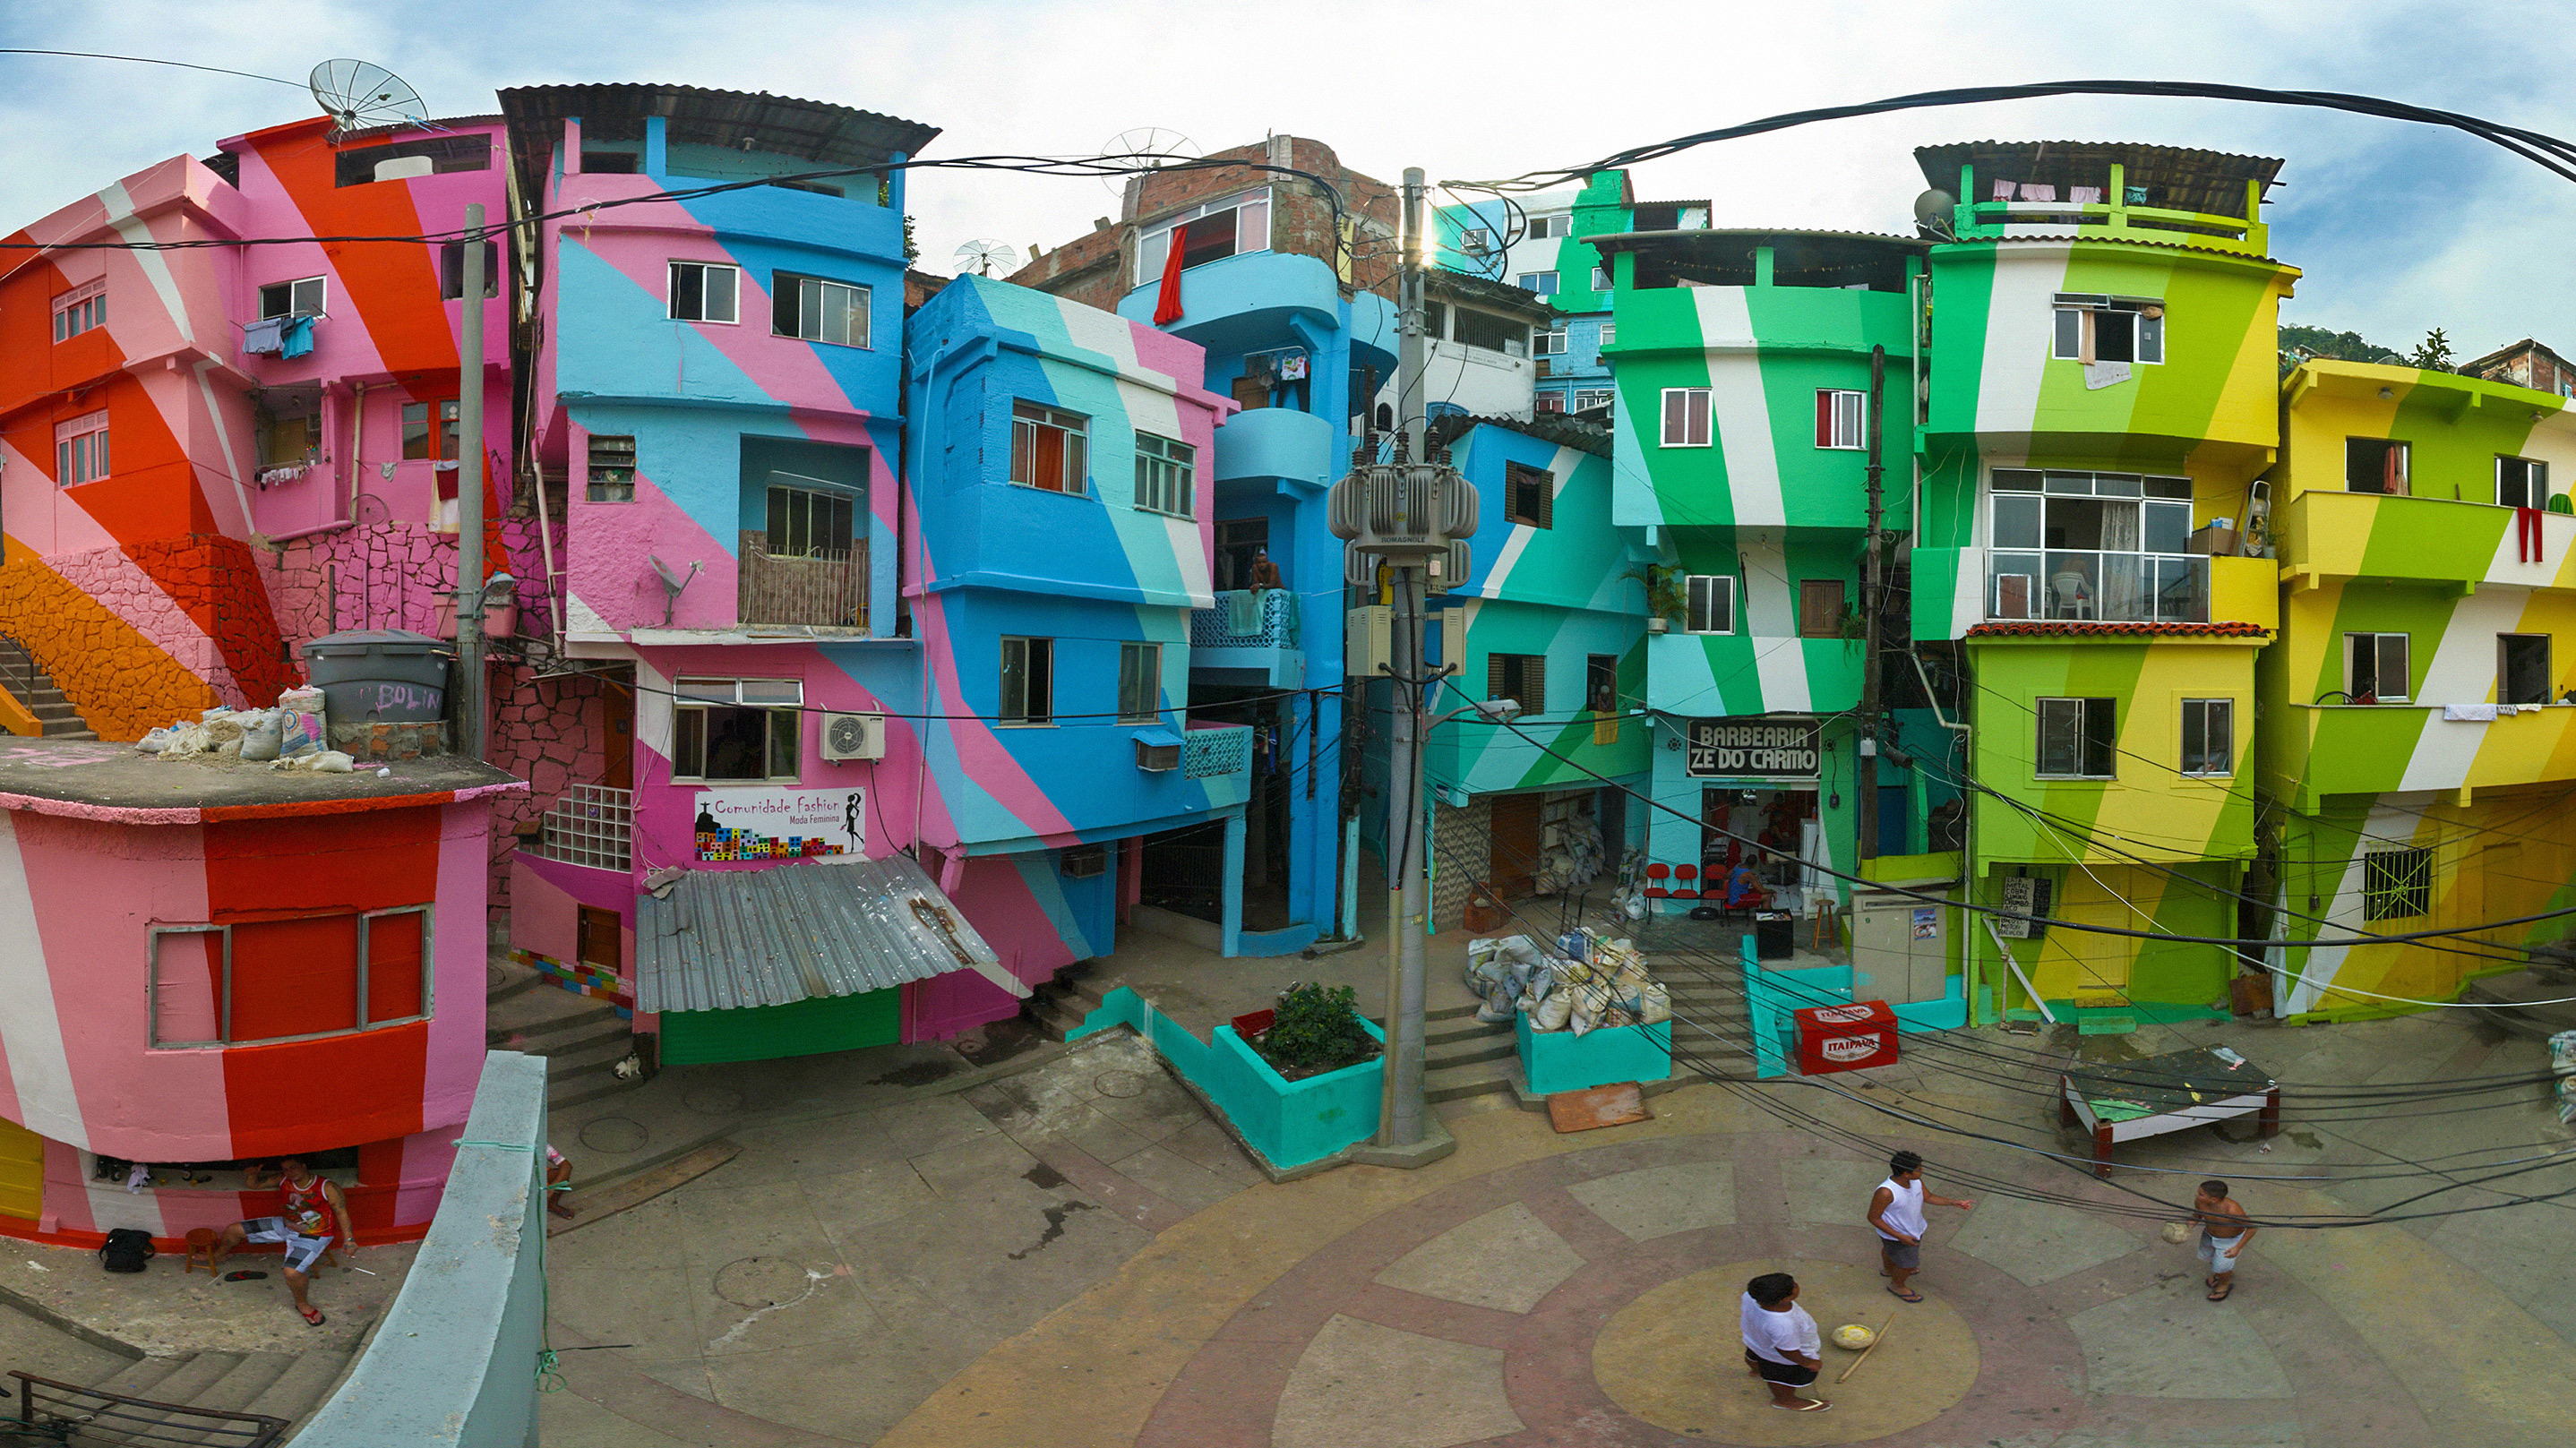 Image for Dre Urhahn: How Can Public Art Projects Transform Rough Neighborhoods? Article